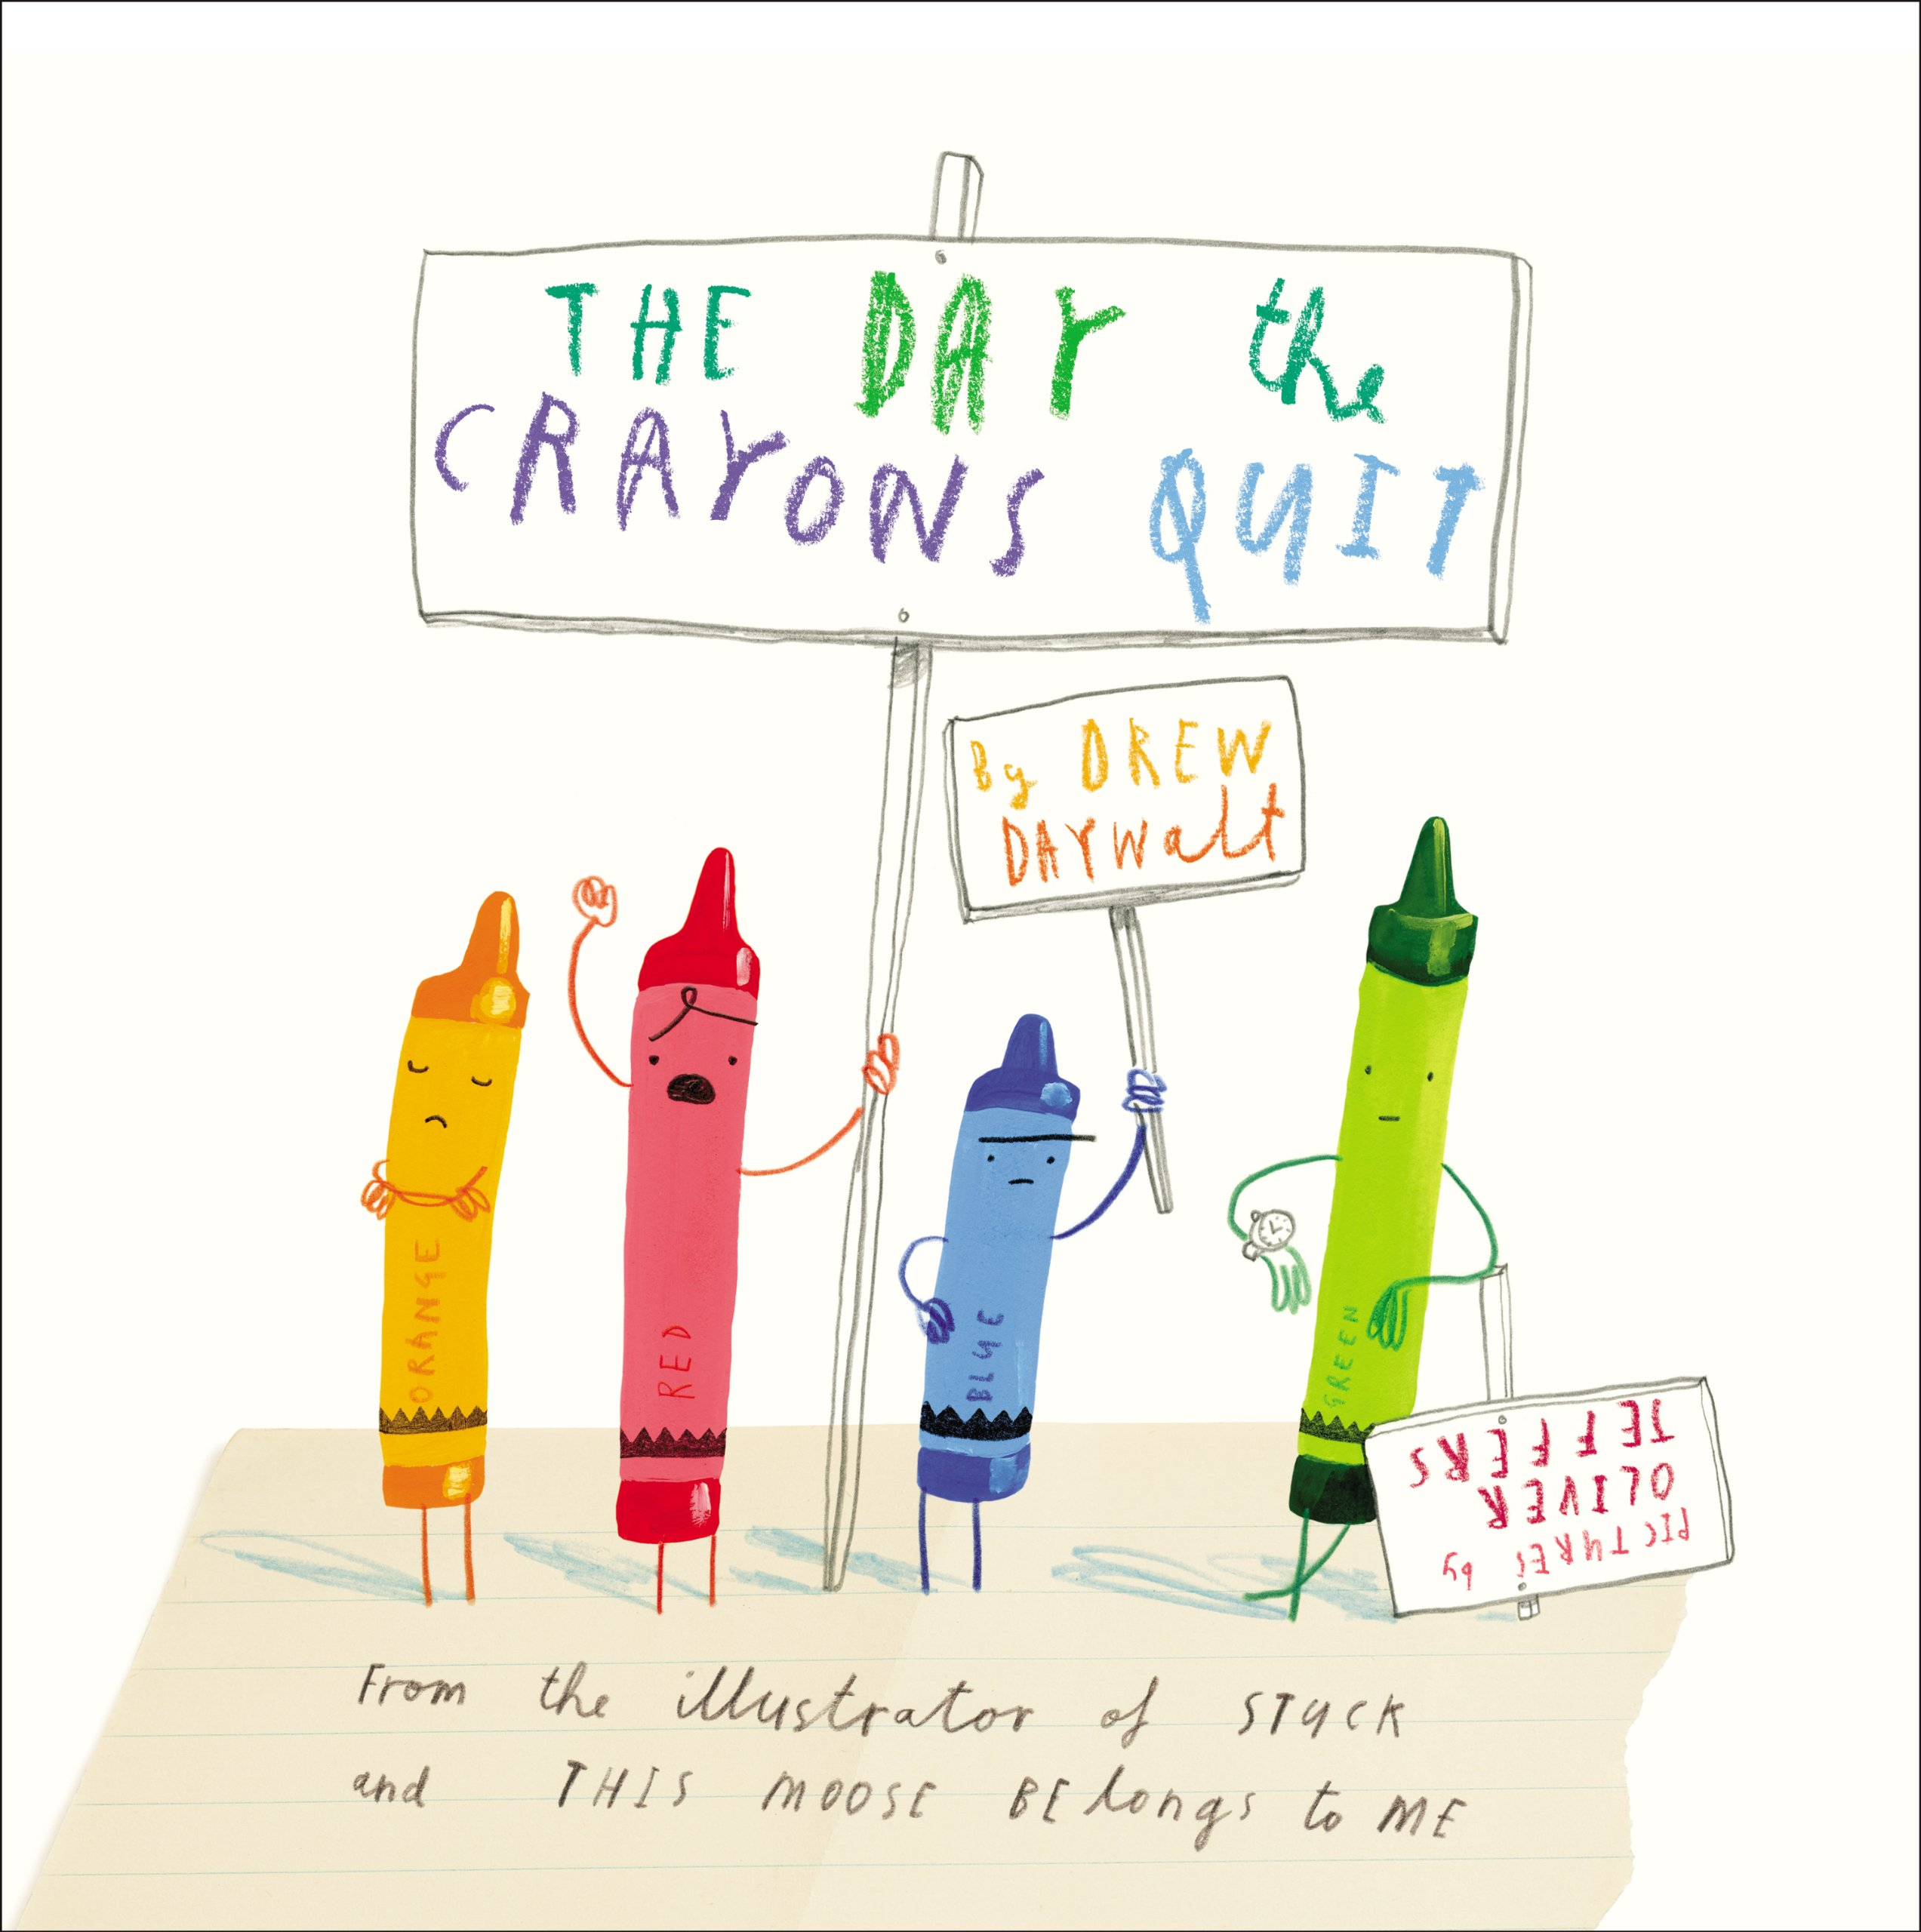 http://www.amazon.com/The-Crayons-Quit-Drew-Daywalt/dp/0399255370